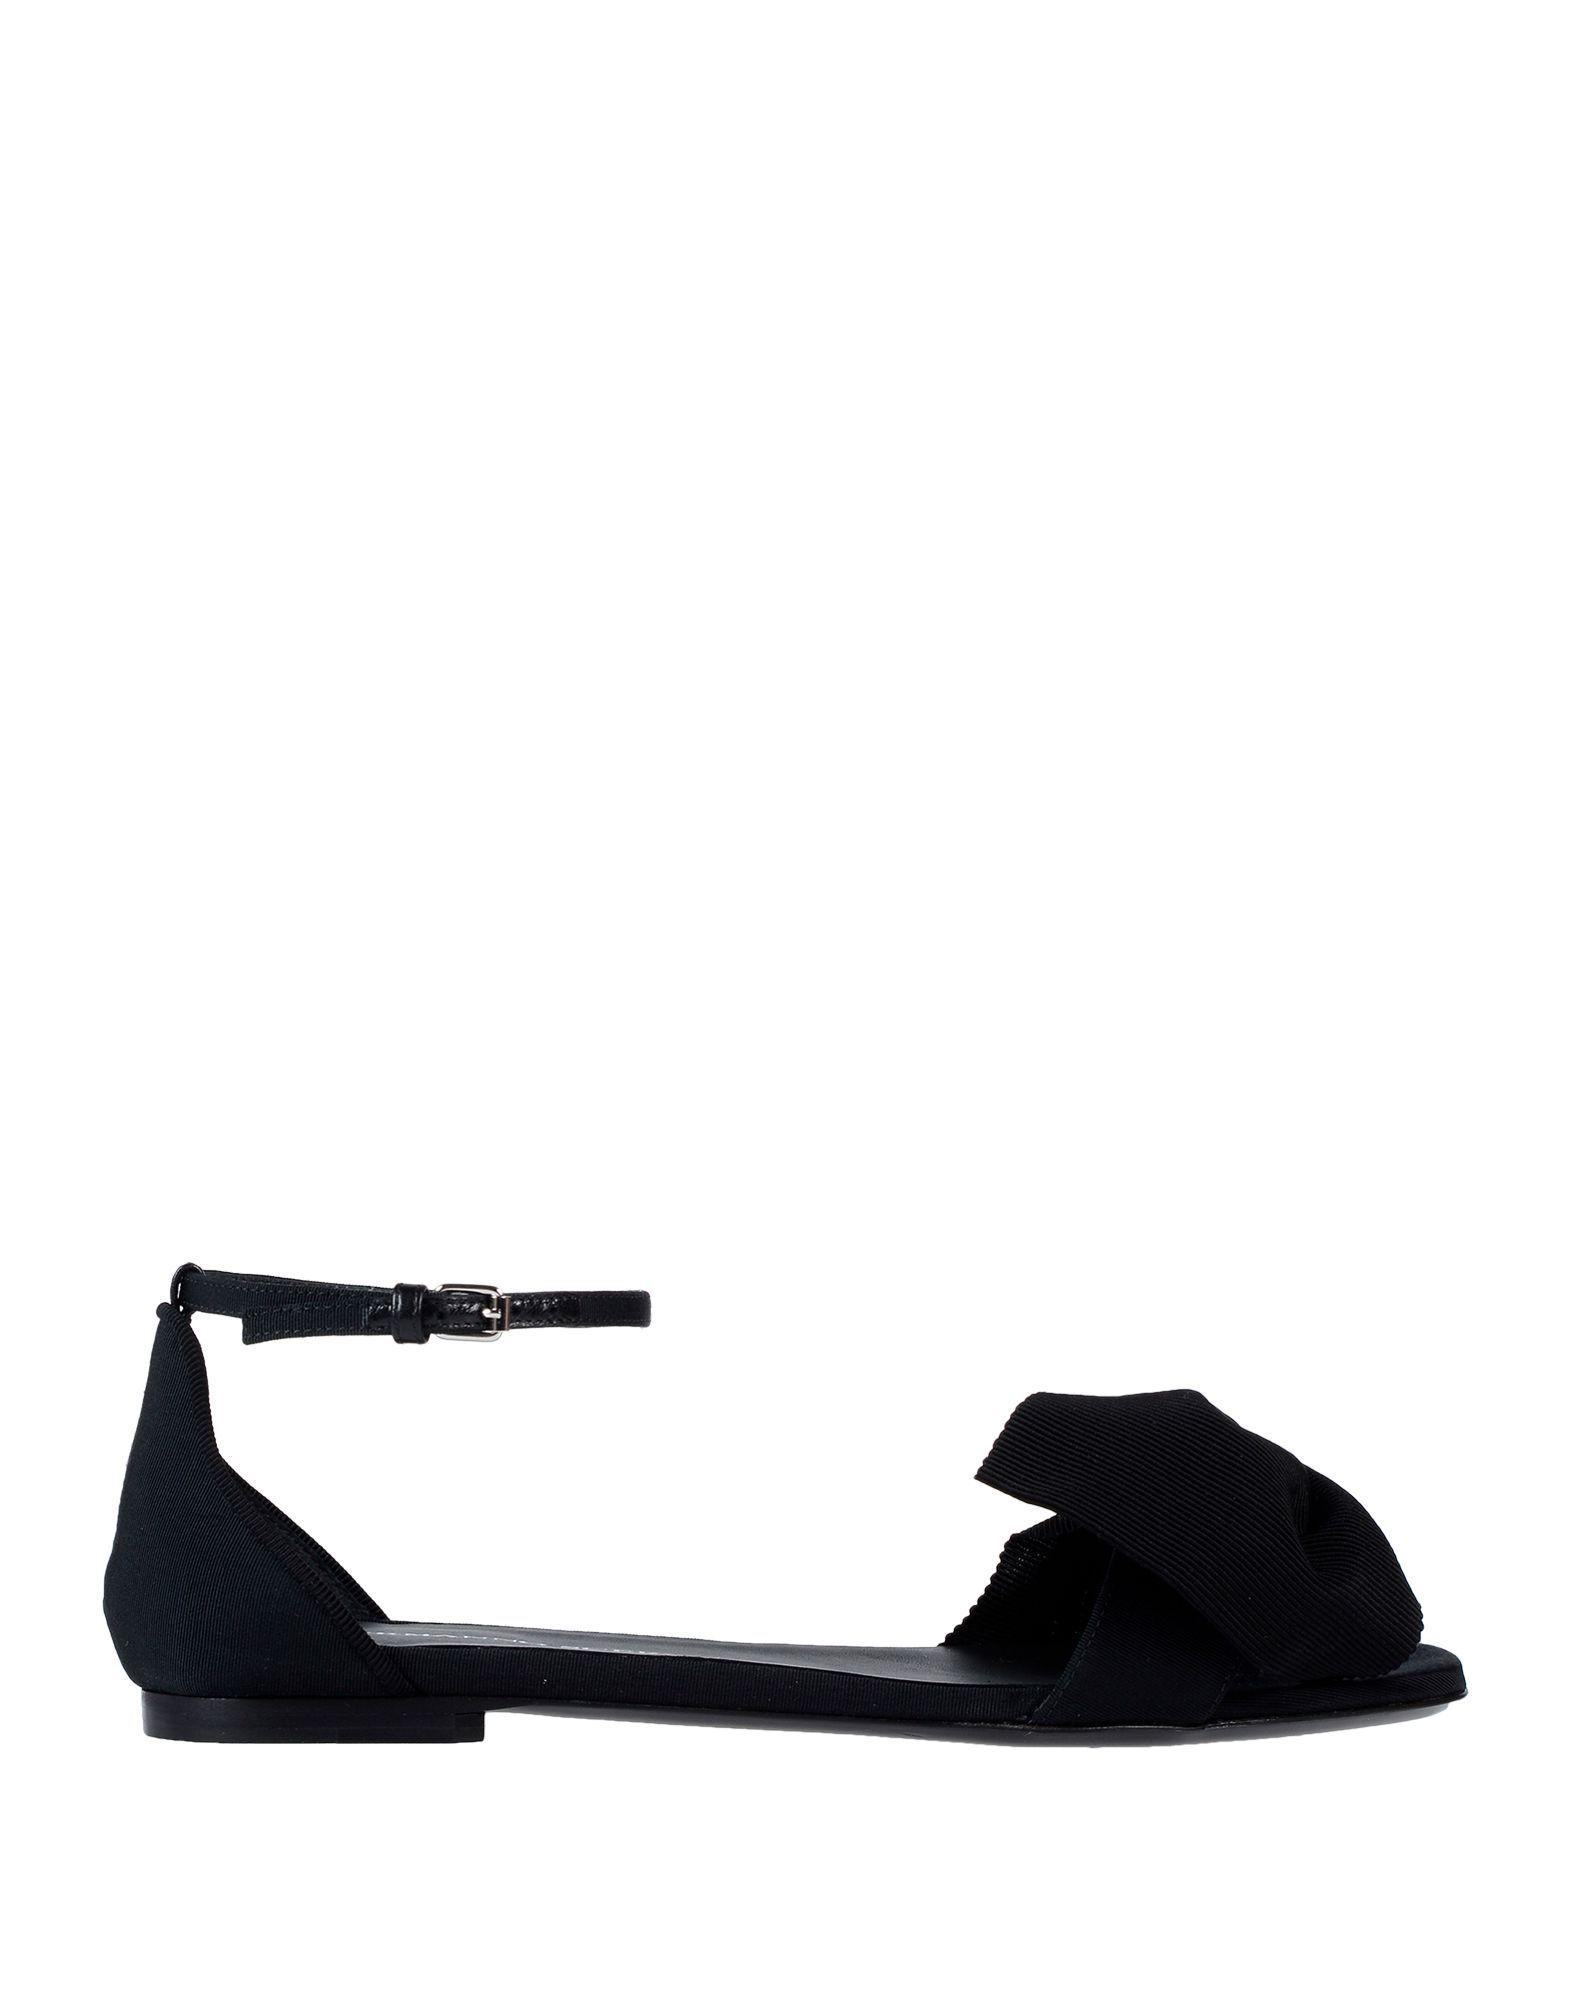 Ermanno Scervino Black Bow Detail Flats